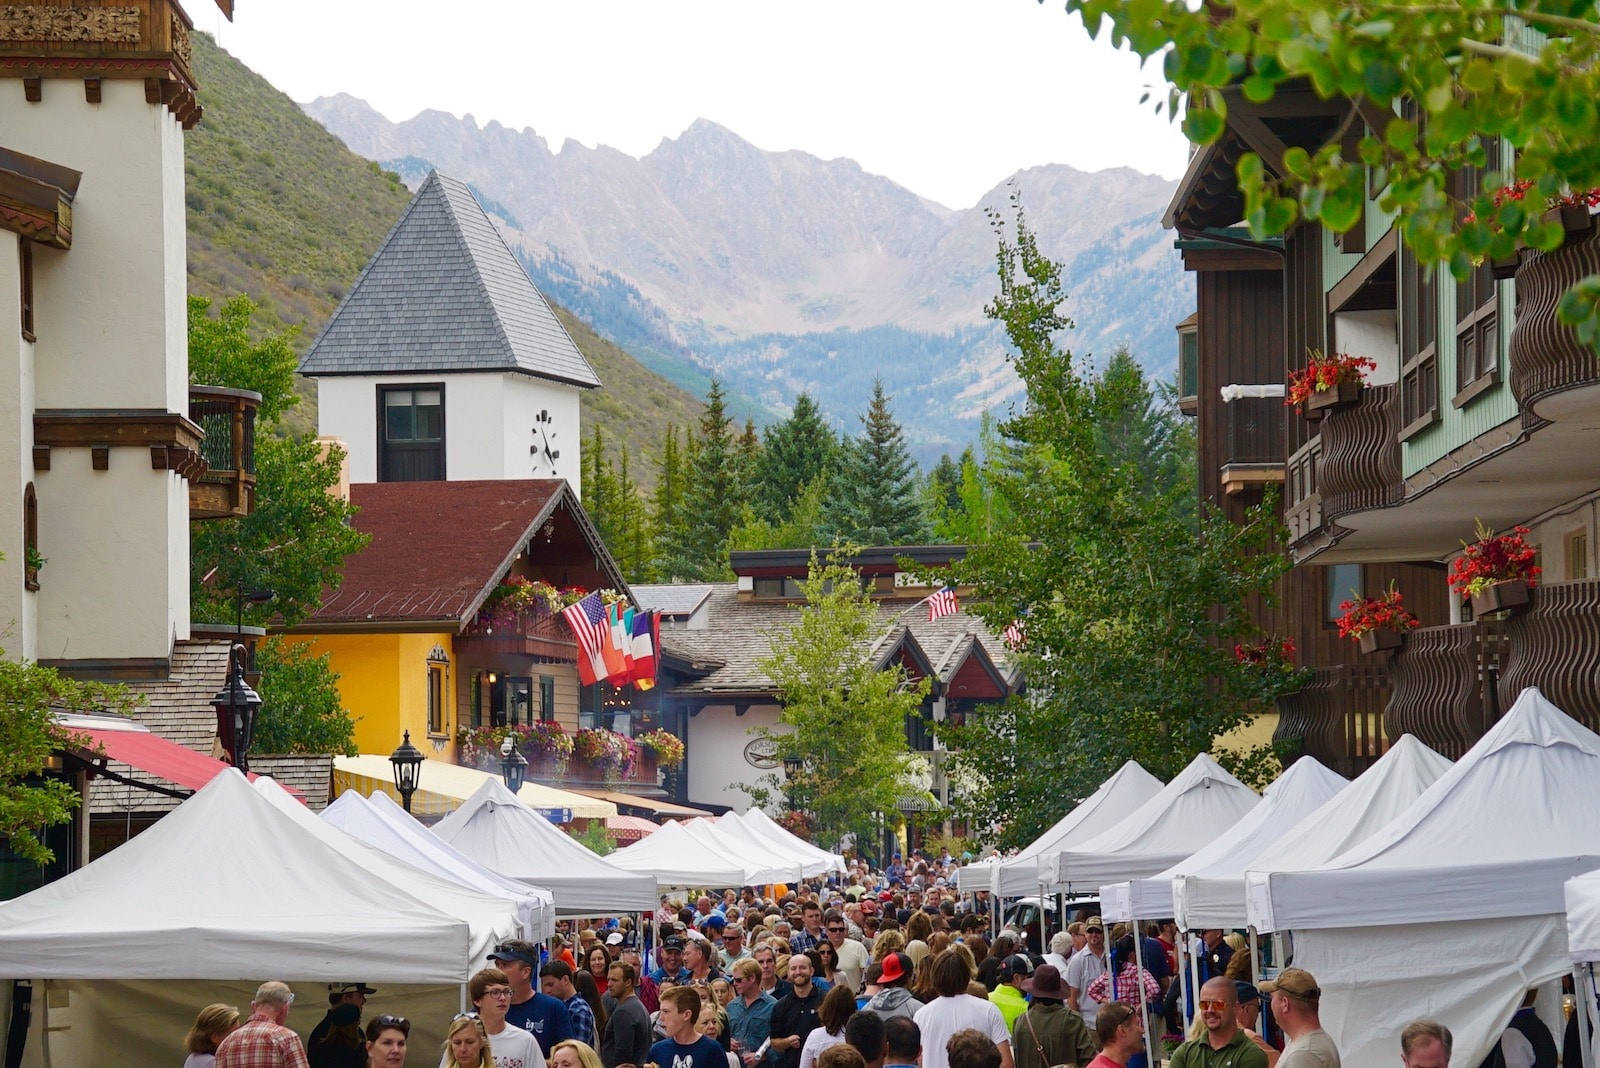 Image of the crowds at Gourmet on Gore in Vail, Colorado